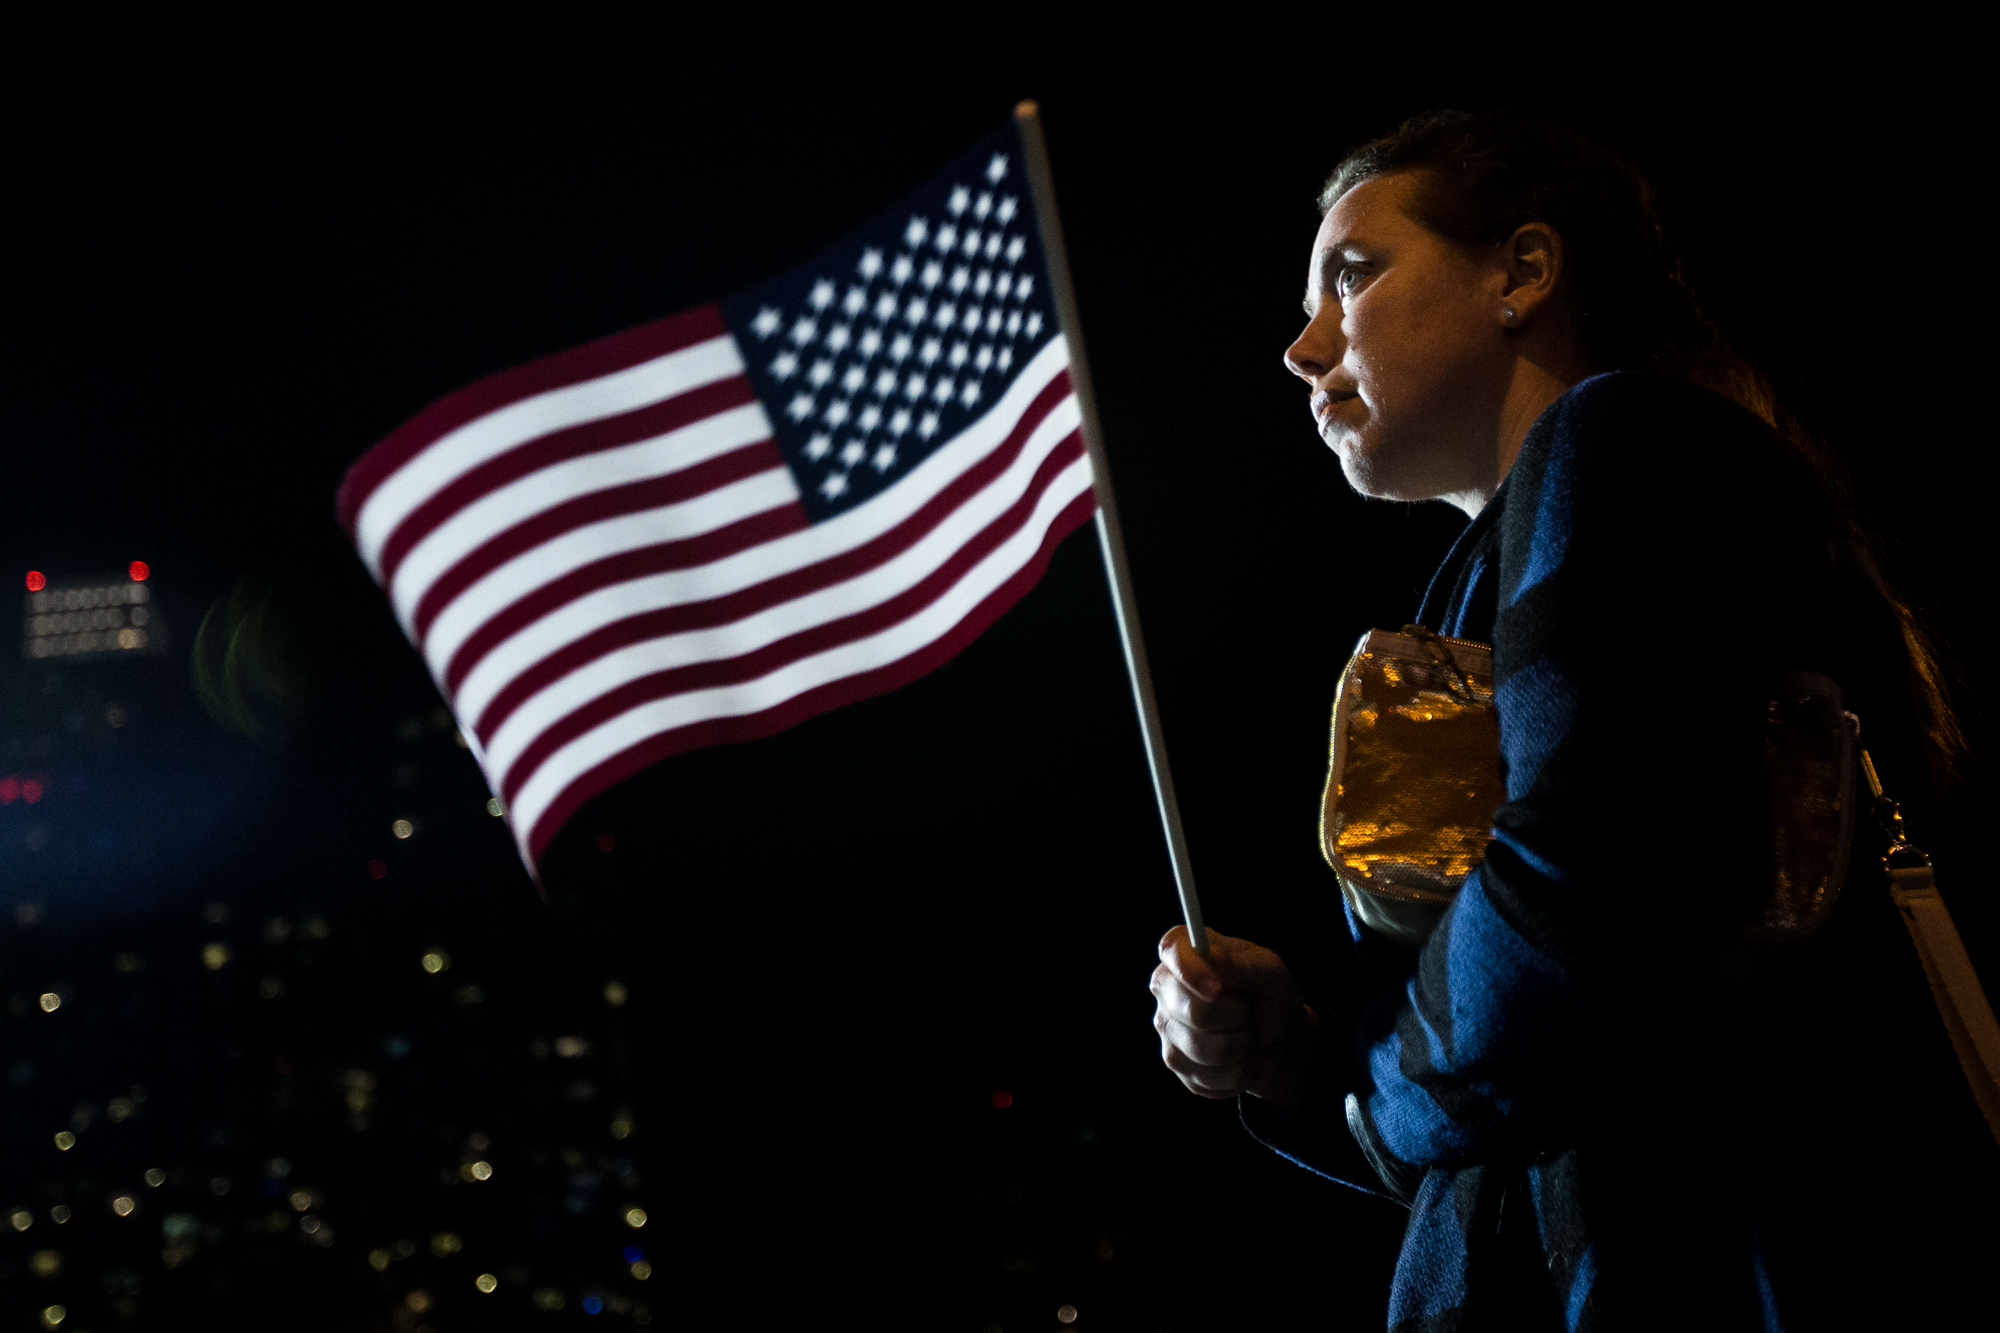 Fiona Russo, of New York, waves a flag as the venue began to clear out when it became clear Trump would win the presidency during Hillary Clinton's Election Night Event outside the Jacob K. Javits Convention Center, in the early hours of Nov. 9, 2016. She, along with dozens of other supporters, stayed until about 2 a.m. She continued standing and waving her flag until Clinton's campaign manager announced that Clinton would not be speaking.